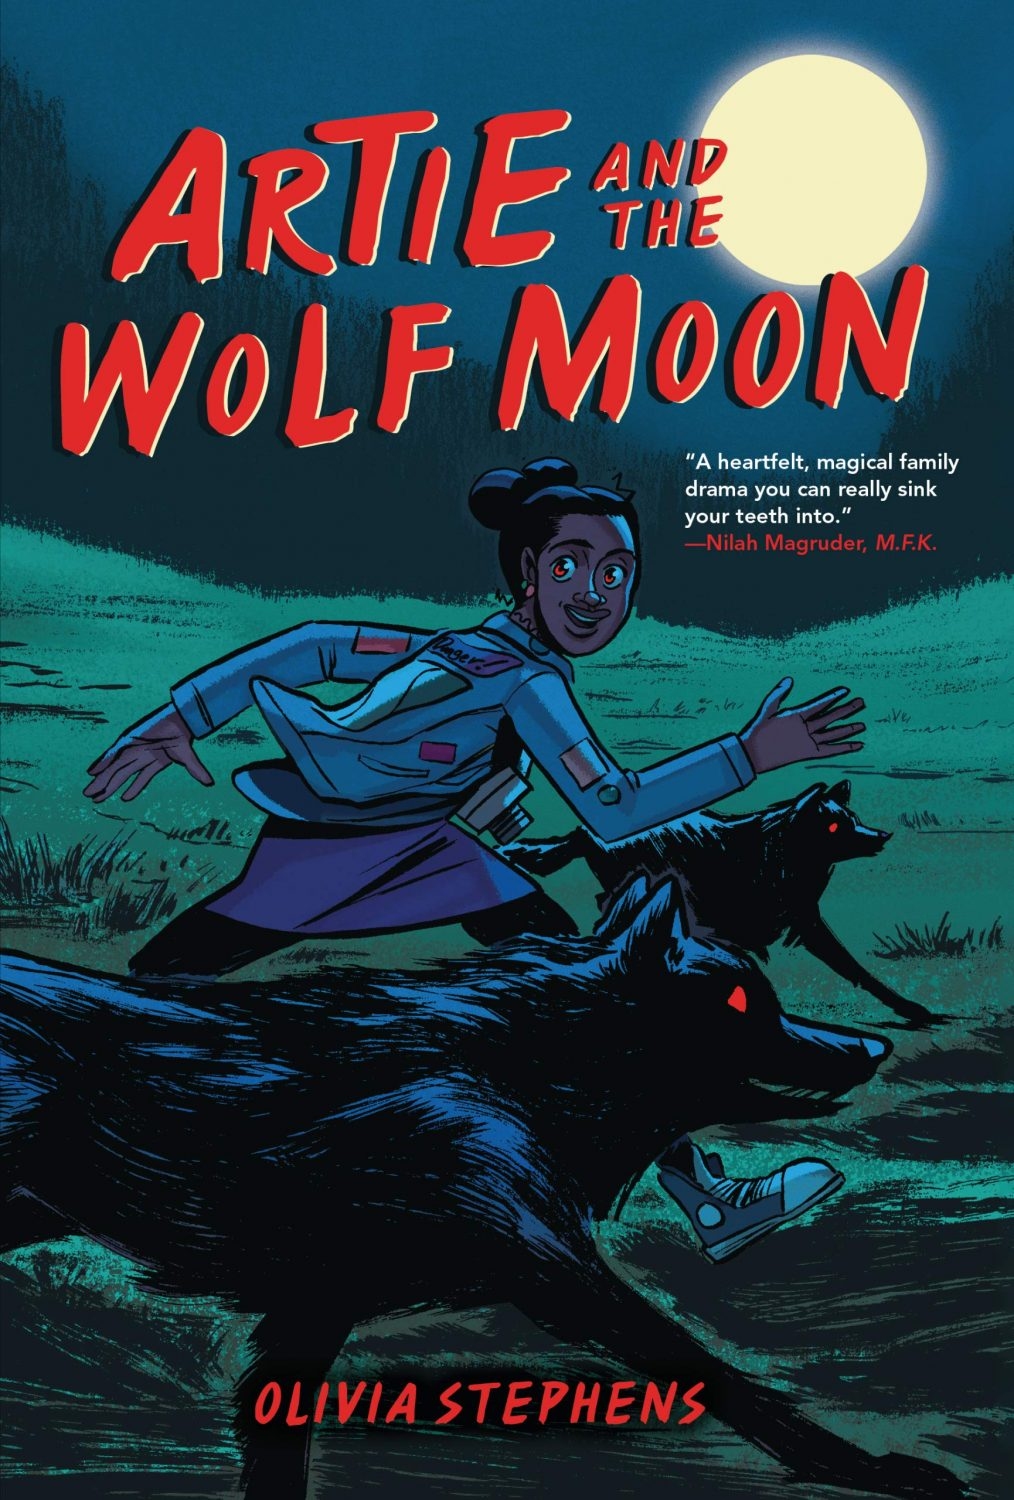 """Cover for the graphic novel """"Artie and the Wolf Moon"""" by Olivia Stephens. A 13 year old Black girl named Artie runs alongside two red-eyed wolves while smiling at the viewer. A full moon can be seen behind her. The cover also includes a blurb from Nilah Magruder, the creator of M.F.K., which reads as followers: """"A heartfelt, magical family drama you can really sink your teeth into""""."""